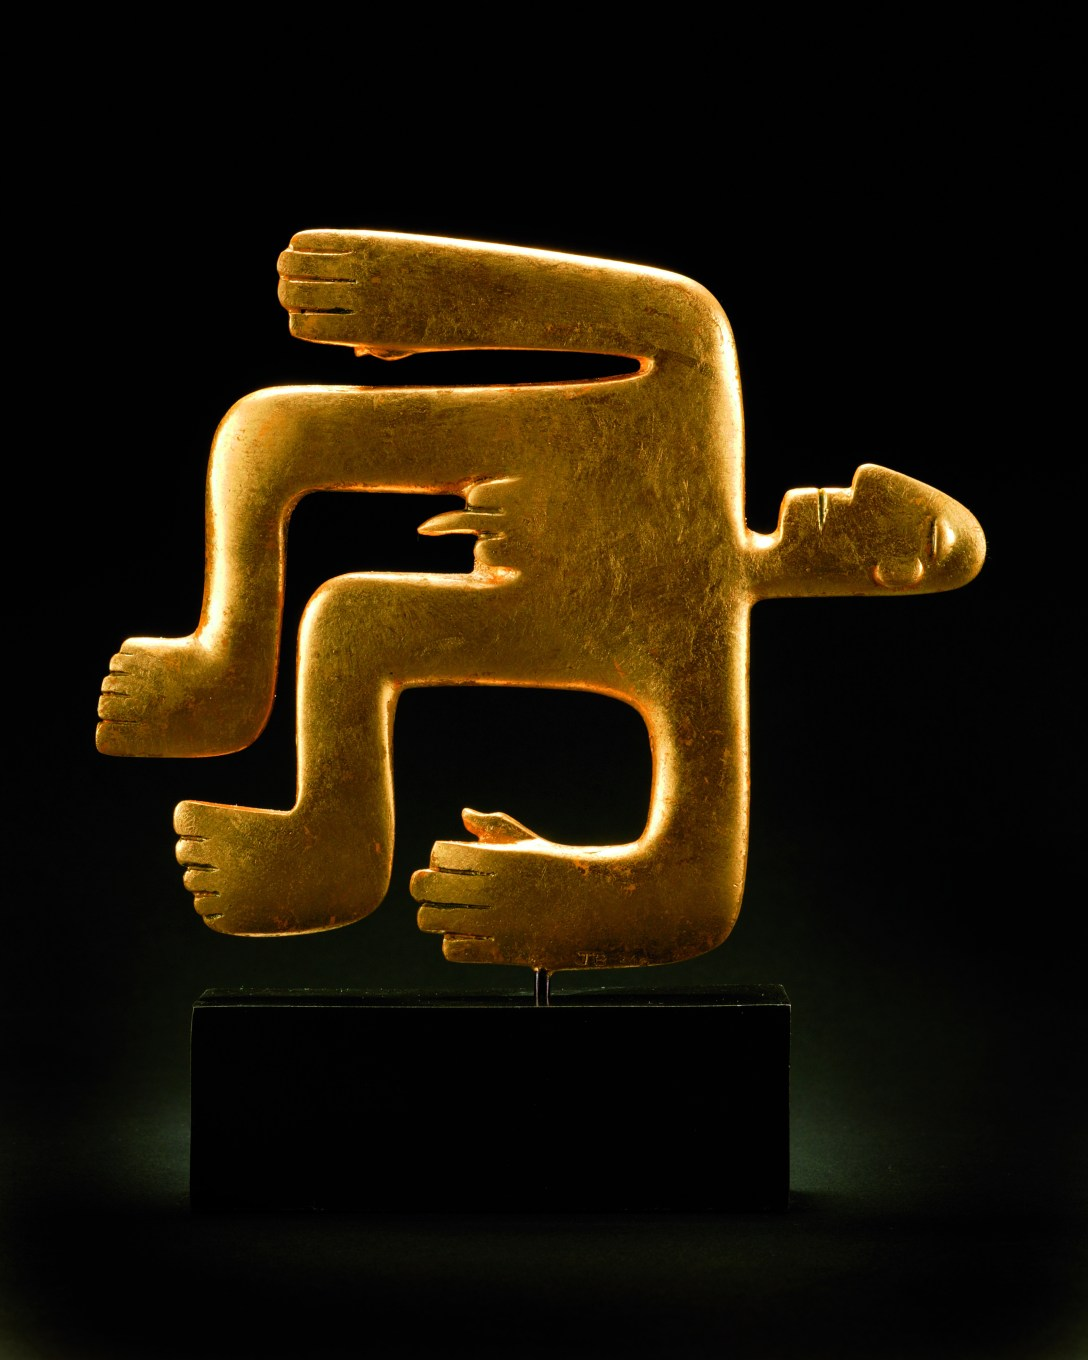 'Gold' 'Sculpture' by Jon Buck 'cast' by Pangolin Editions